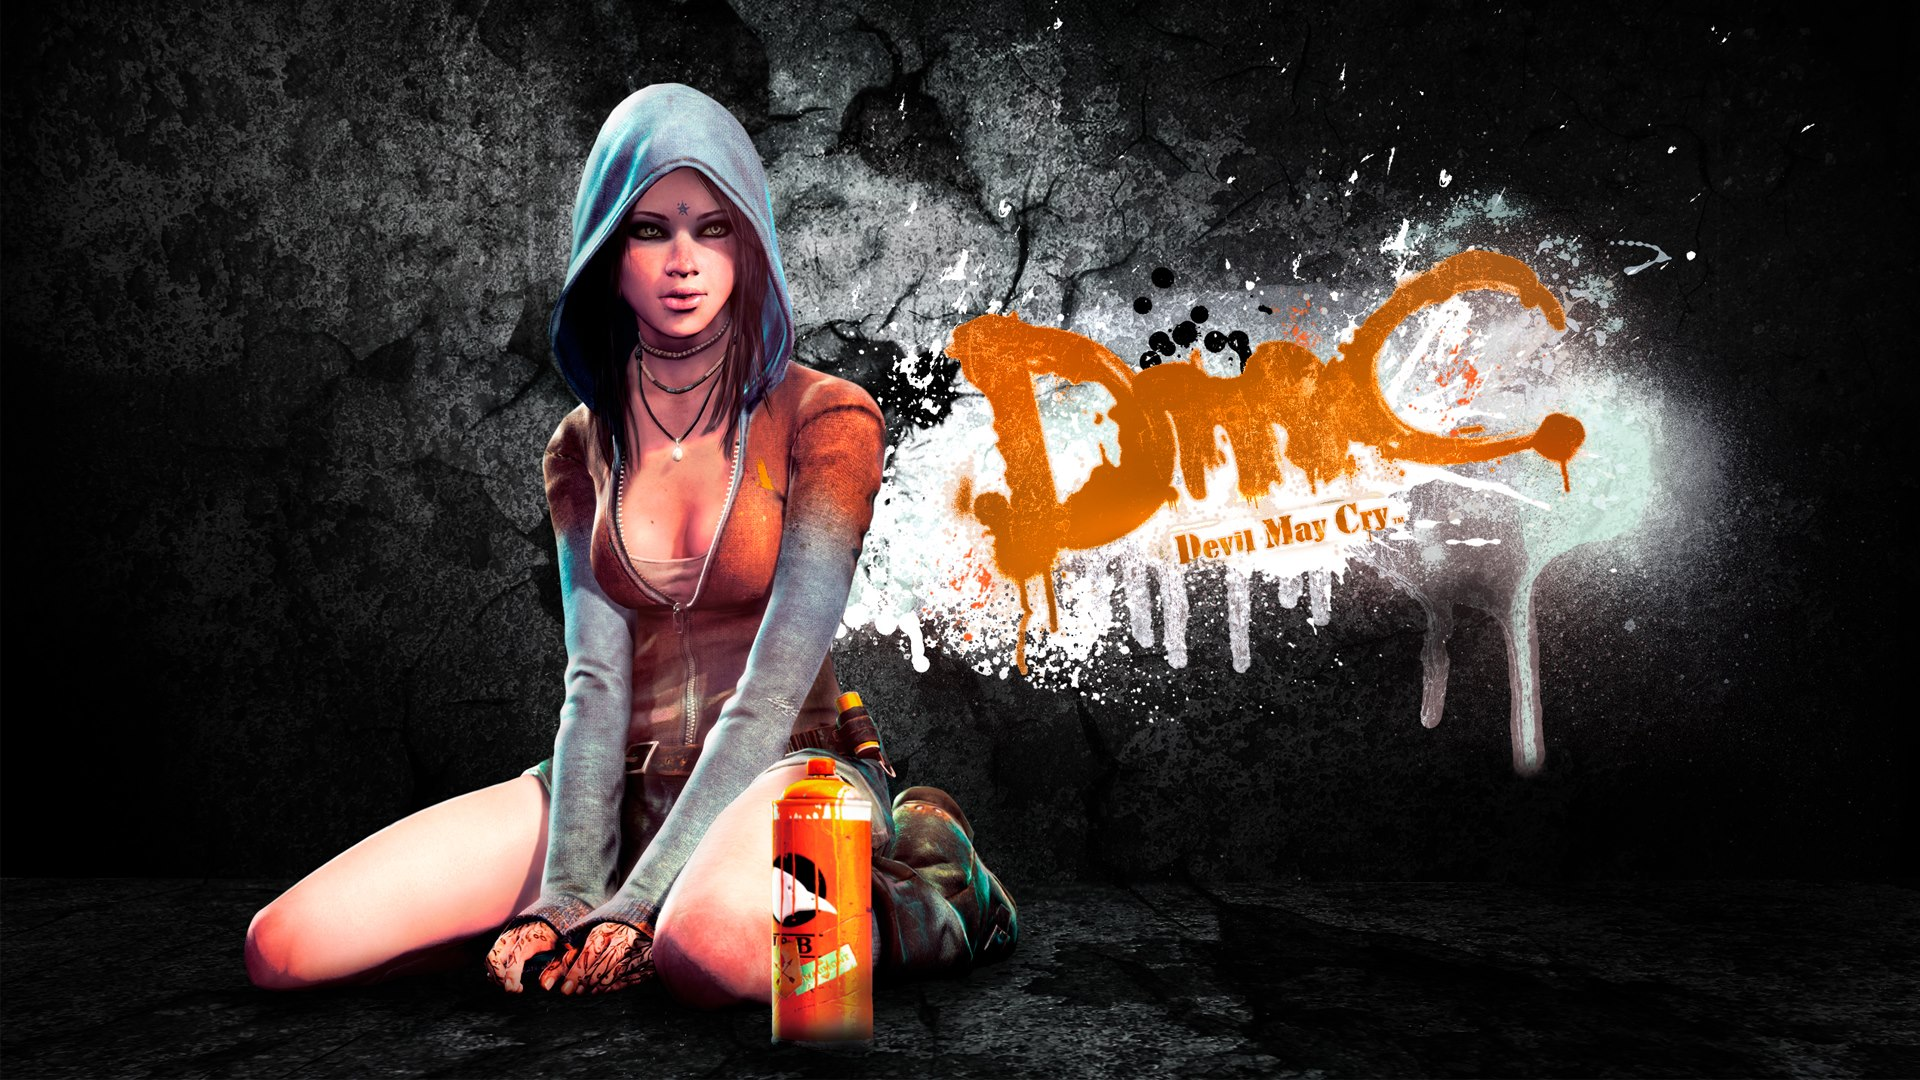 Арт к игре DmC: Devil May Cry